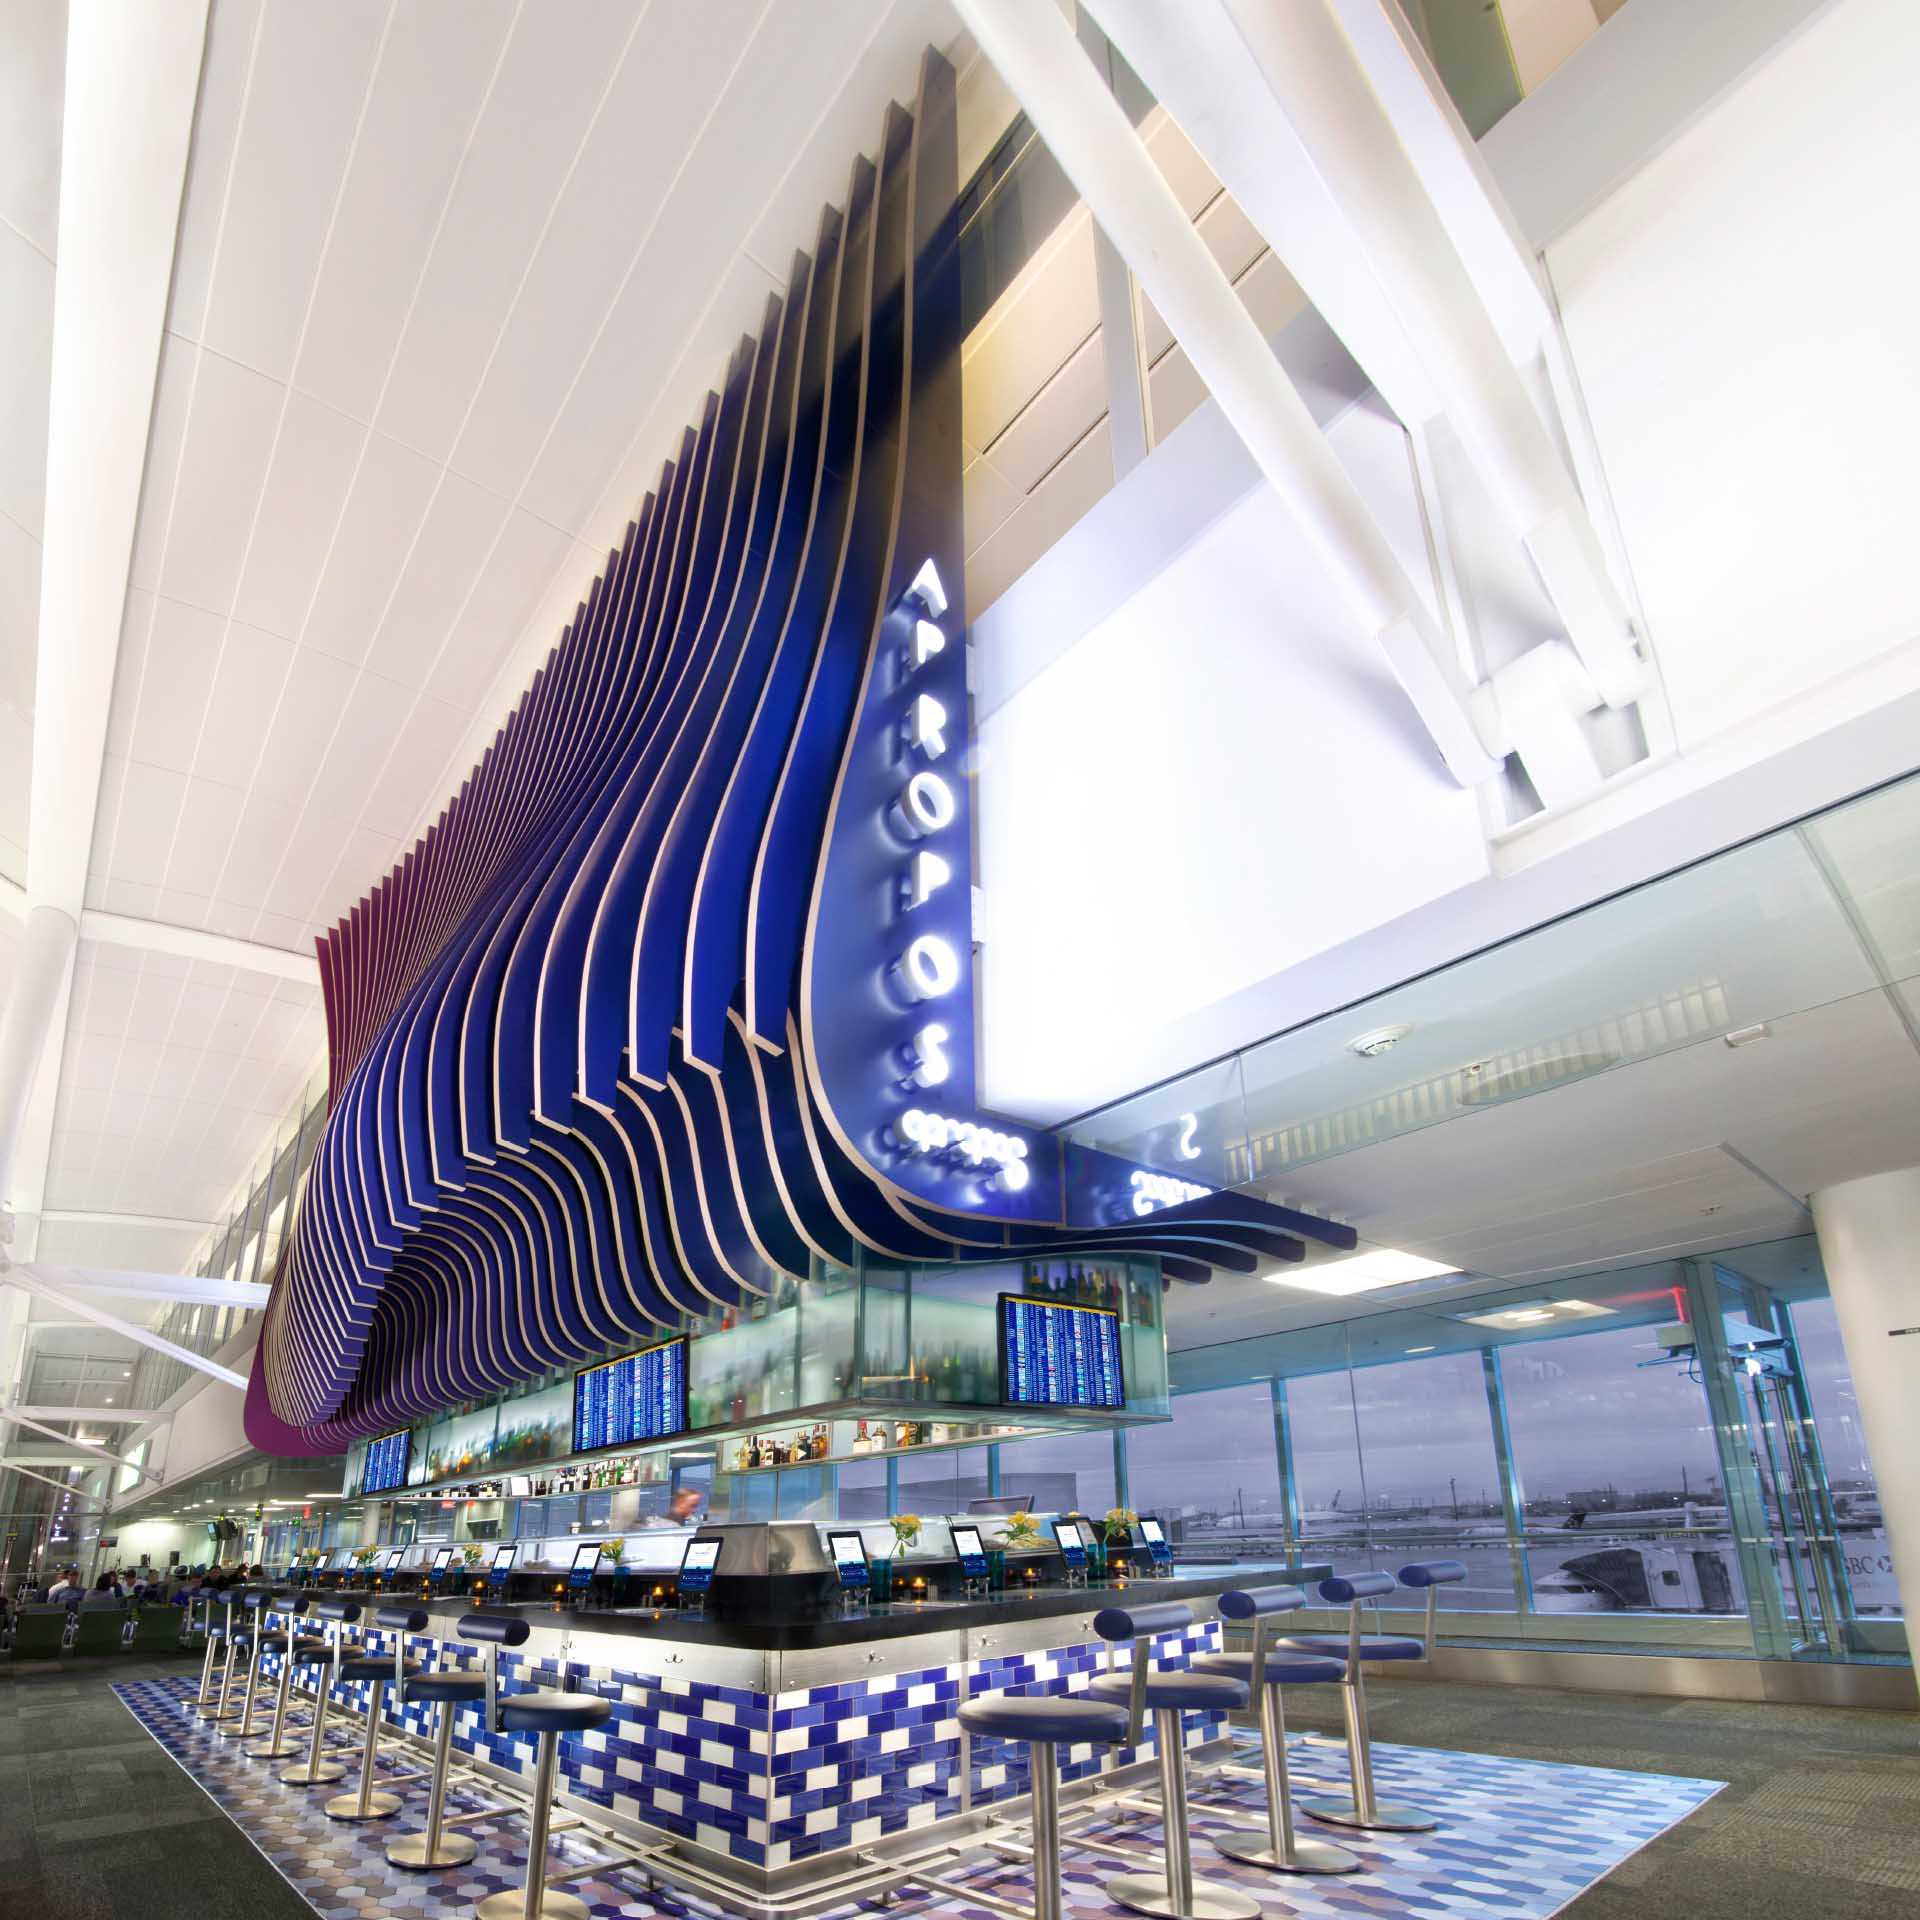 Toronto Pearson International Airport: Eventscape